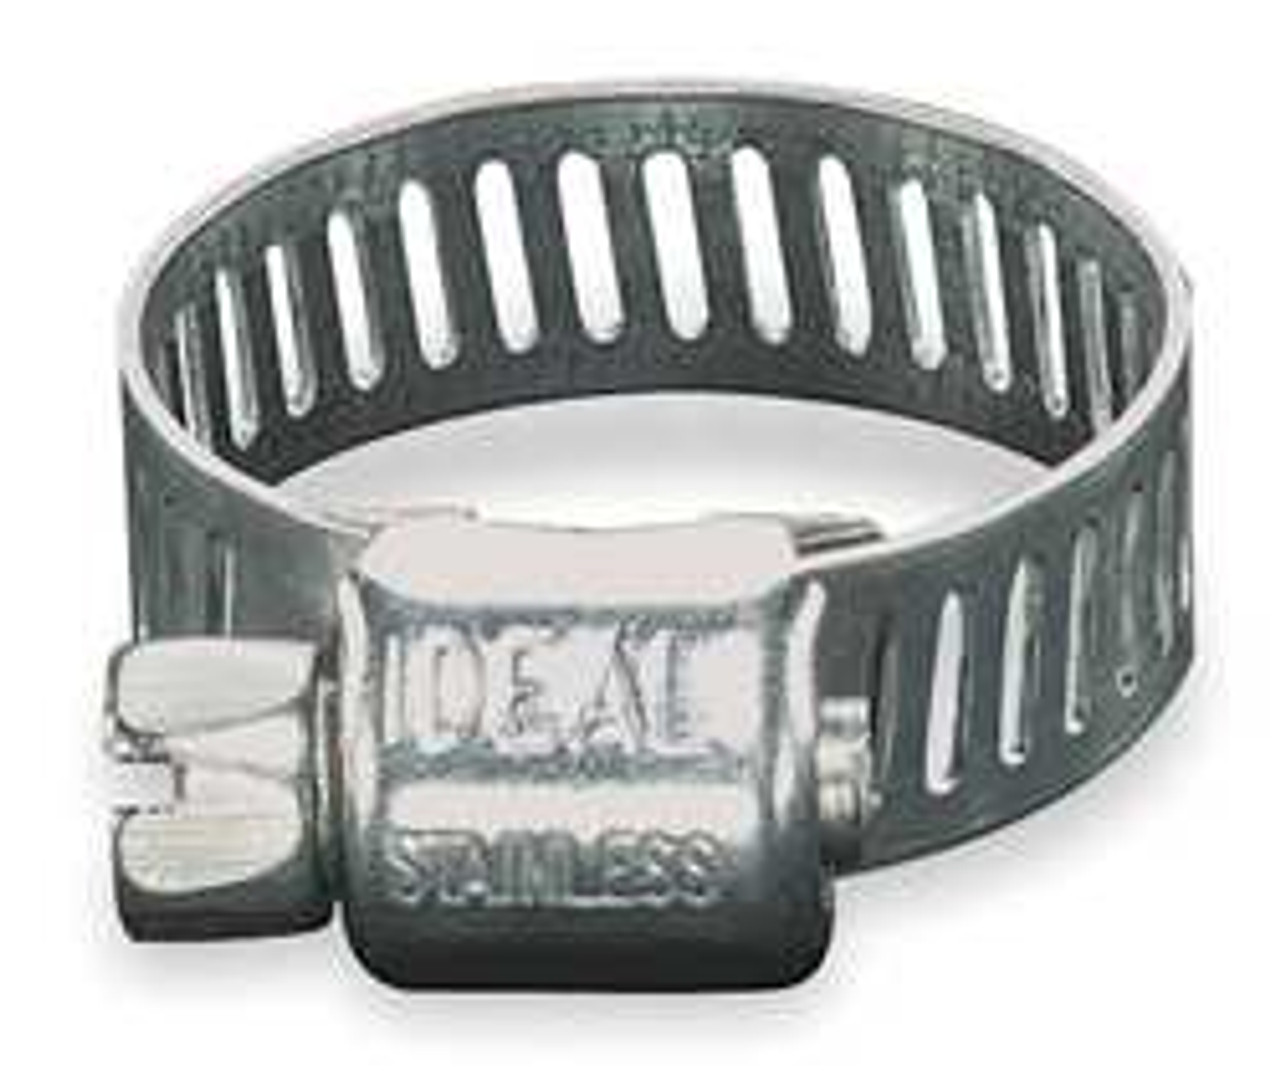 HLP Hose Clamps (6 pack)